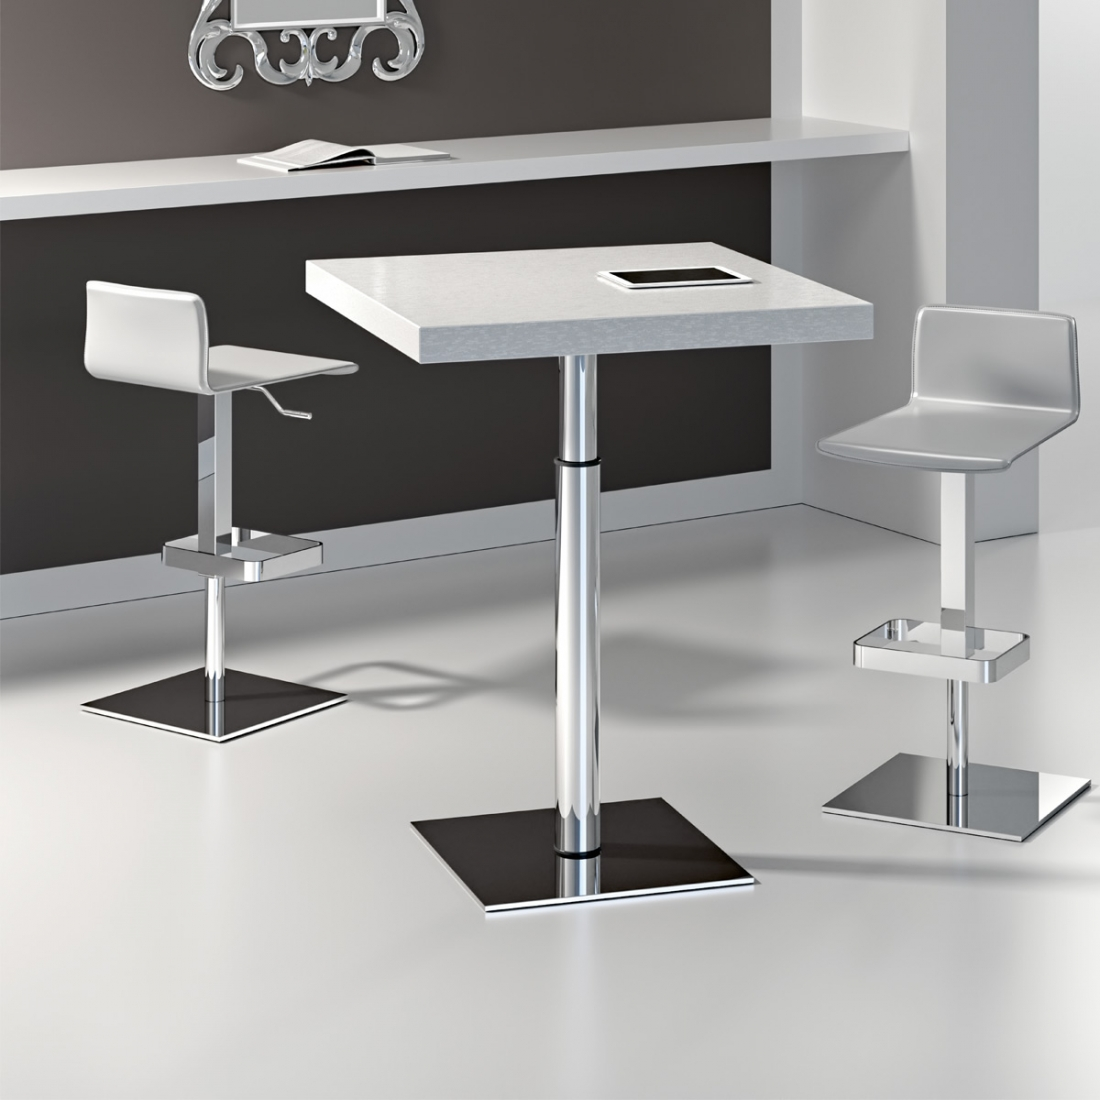 Table basse r glable en hauteur orfeo chrom - Table salon modulable hauteur ...